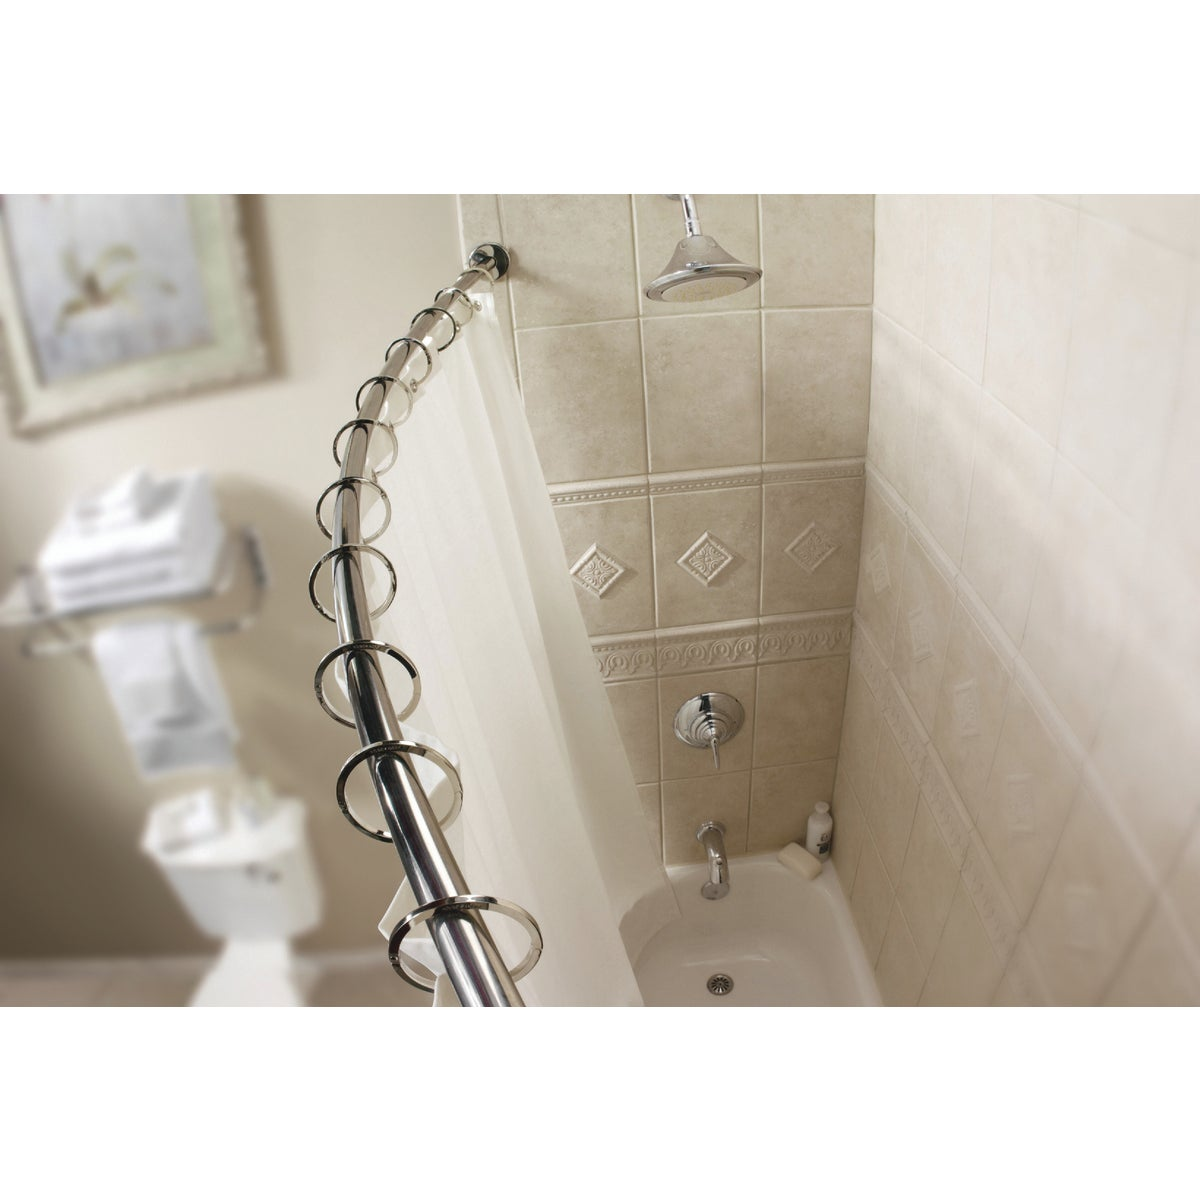 NICKEL CURVE SHOWER ROD